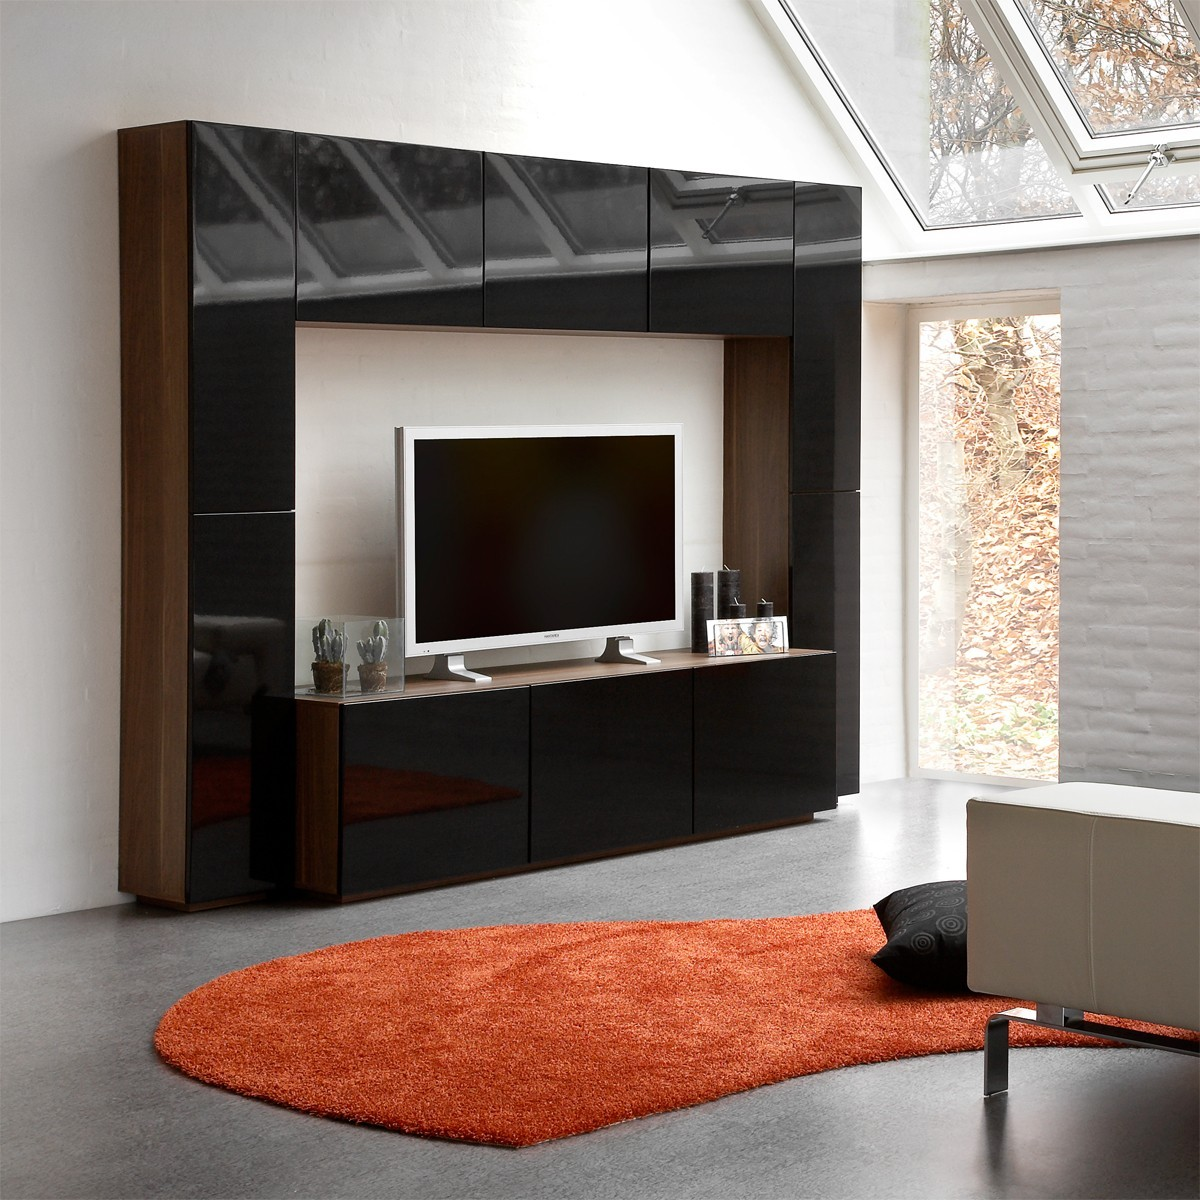 funvitcom verblender wohnzimmer grau. Black Bedroom Furniture Sets. Home Design Ideas